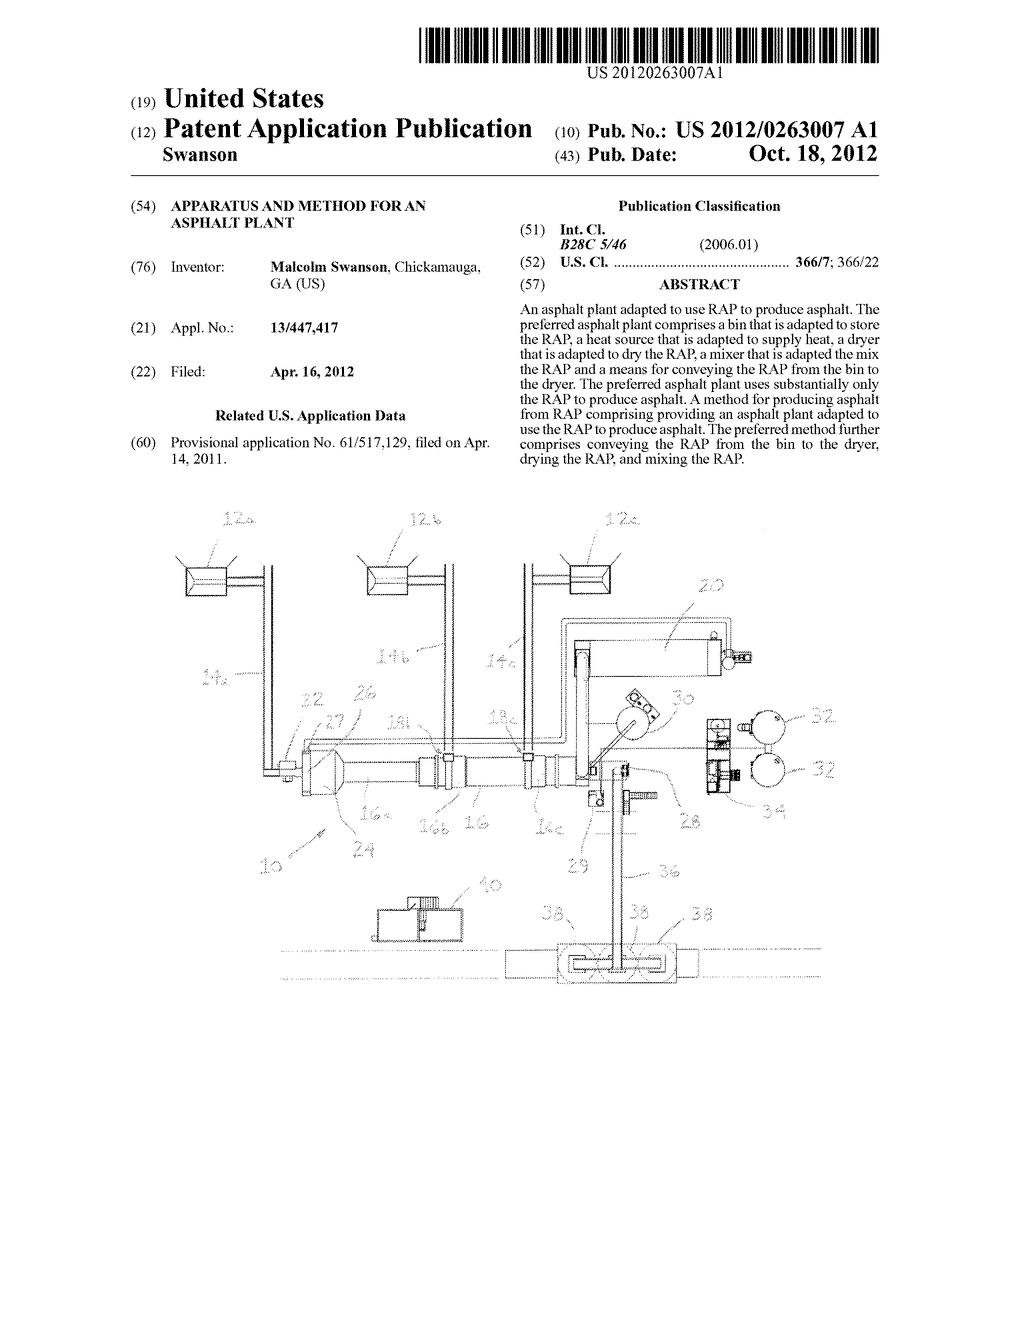 hight resolution of apparatus and method for an asphalt plant diagram schematic and image 01